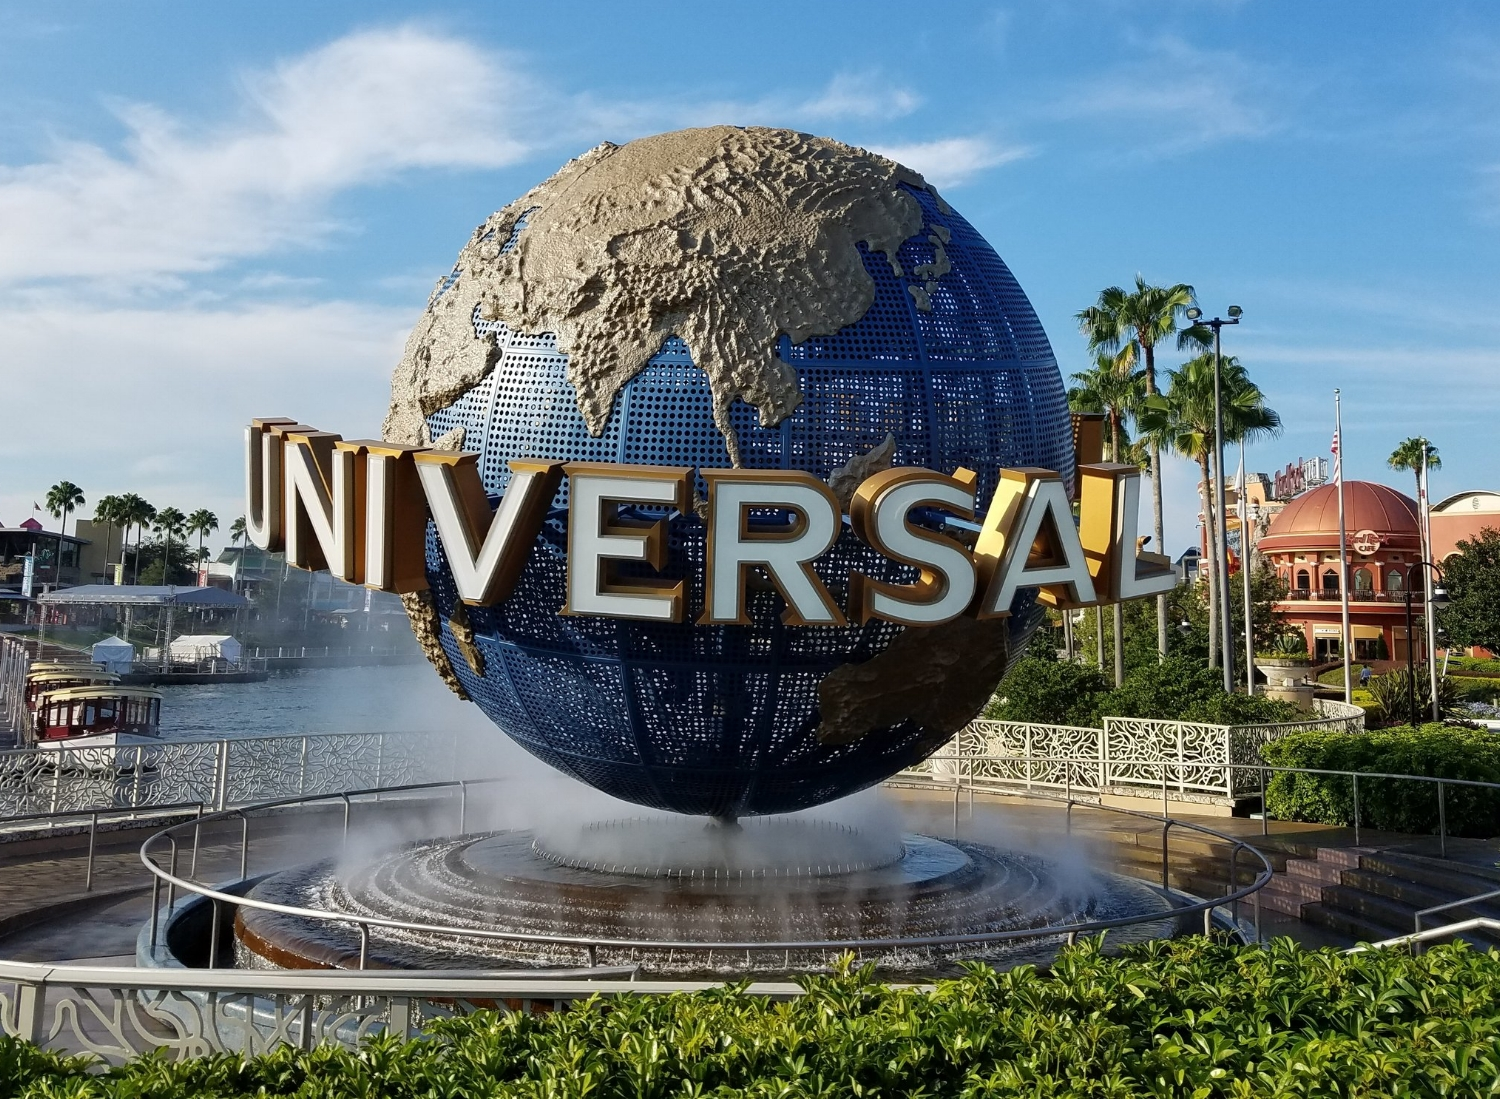 You can find deals on Universal Orlando Partner Hotels when you visit UniversalOrlandoVacations.com